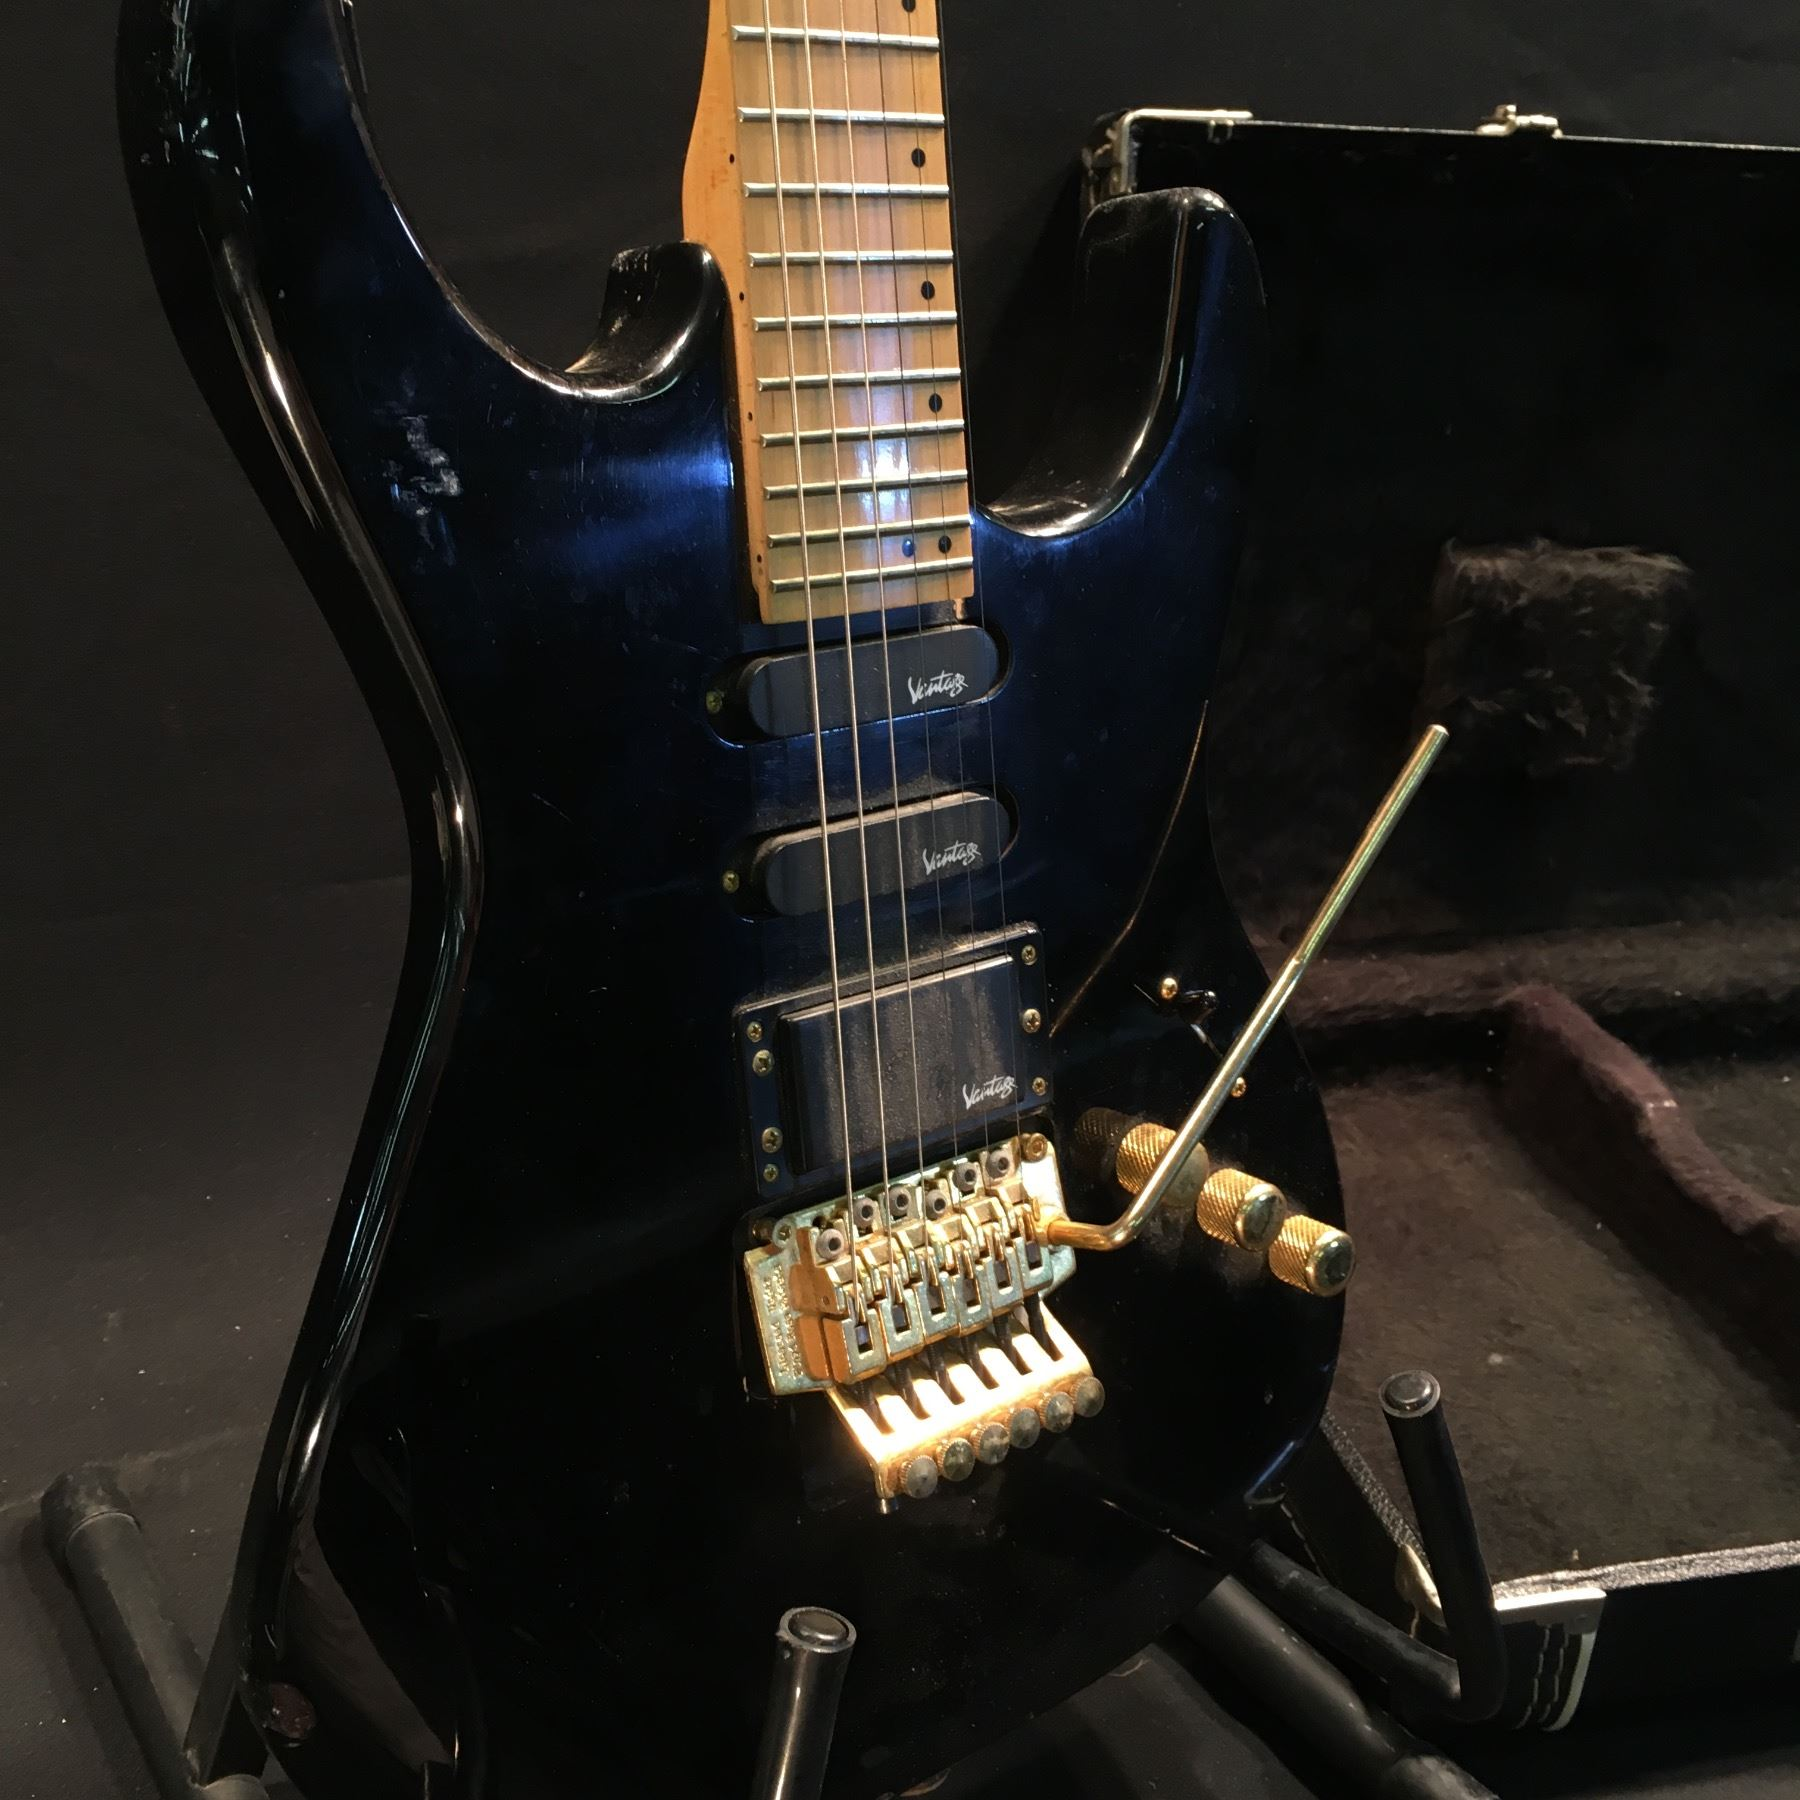 Generous Three Way Switch Guitar Thick Hh 5 Way Switch Wiring Clean Car Alarm Installation Wiring Diagram Bulldog Security Remote Vehicle Starter System Old Dimarzio Push Pull Pot RedIbanez Guitar Pickups VANTAGE 118GDT STRAT STYLE ELECTRIC GUITAR, WITH HUMBUCKER PICKUP ..